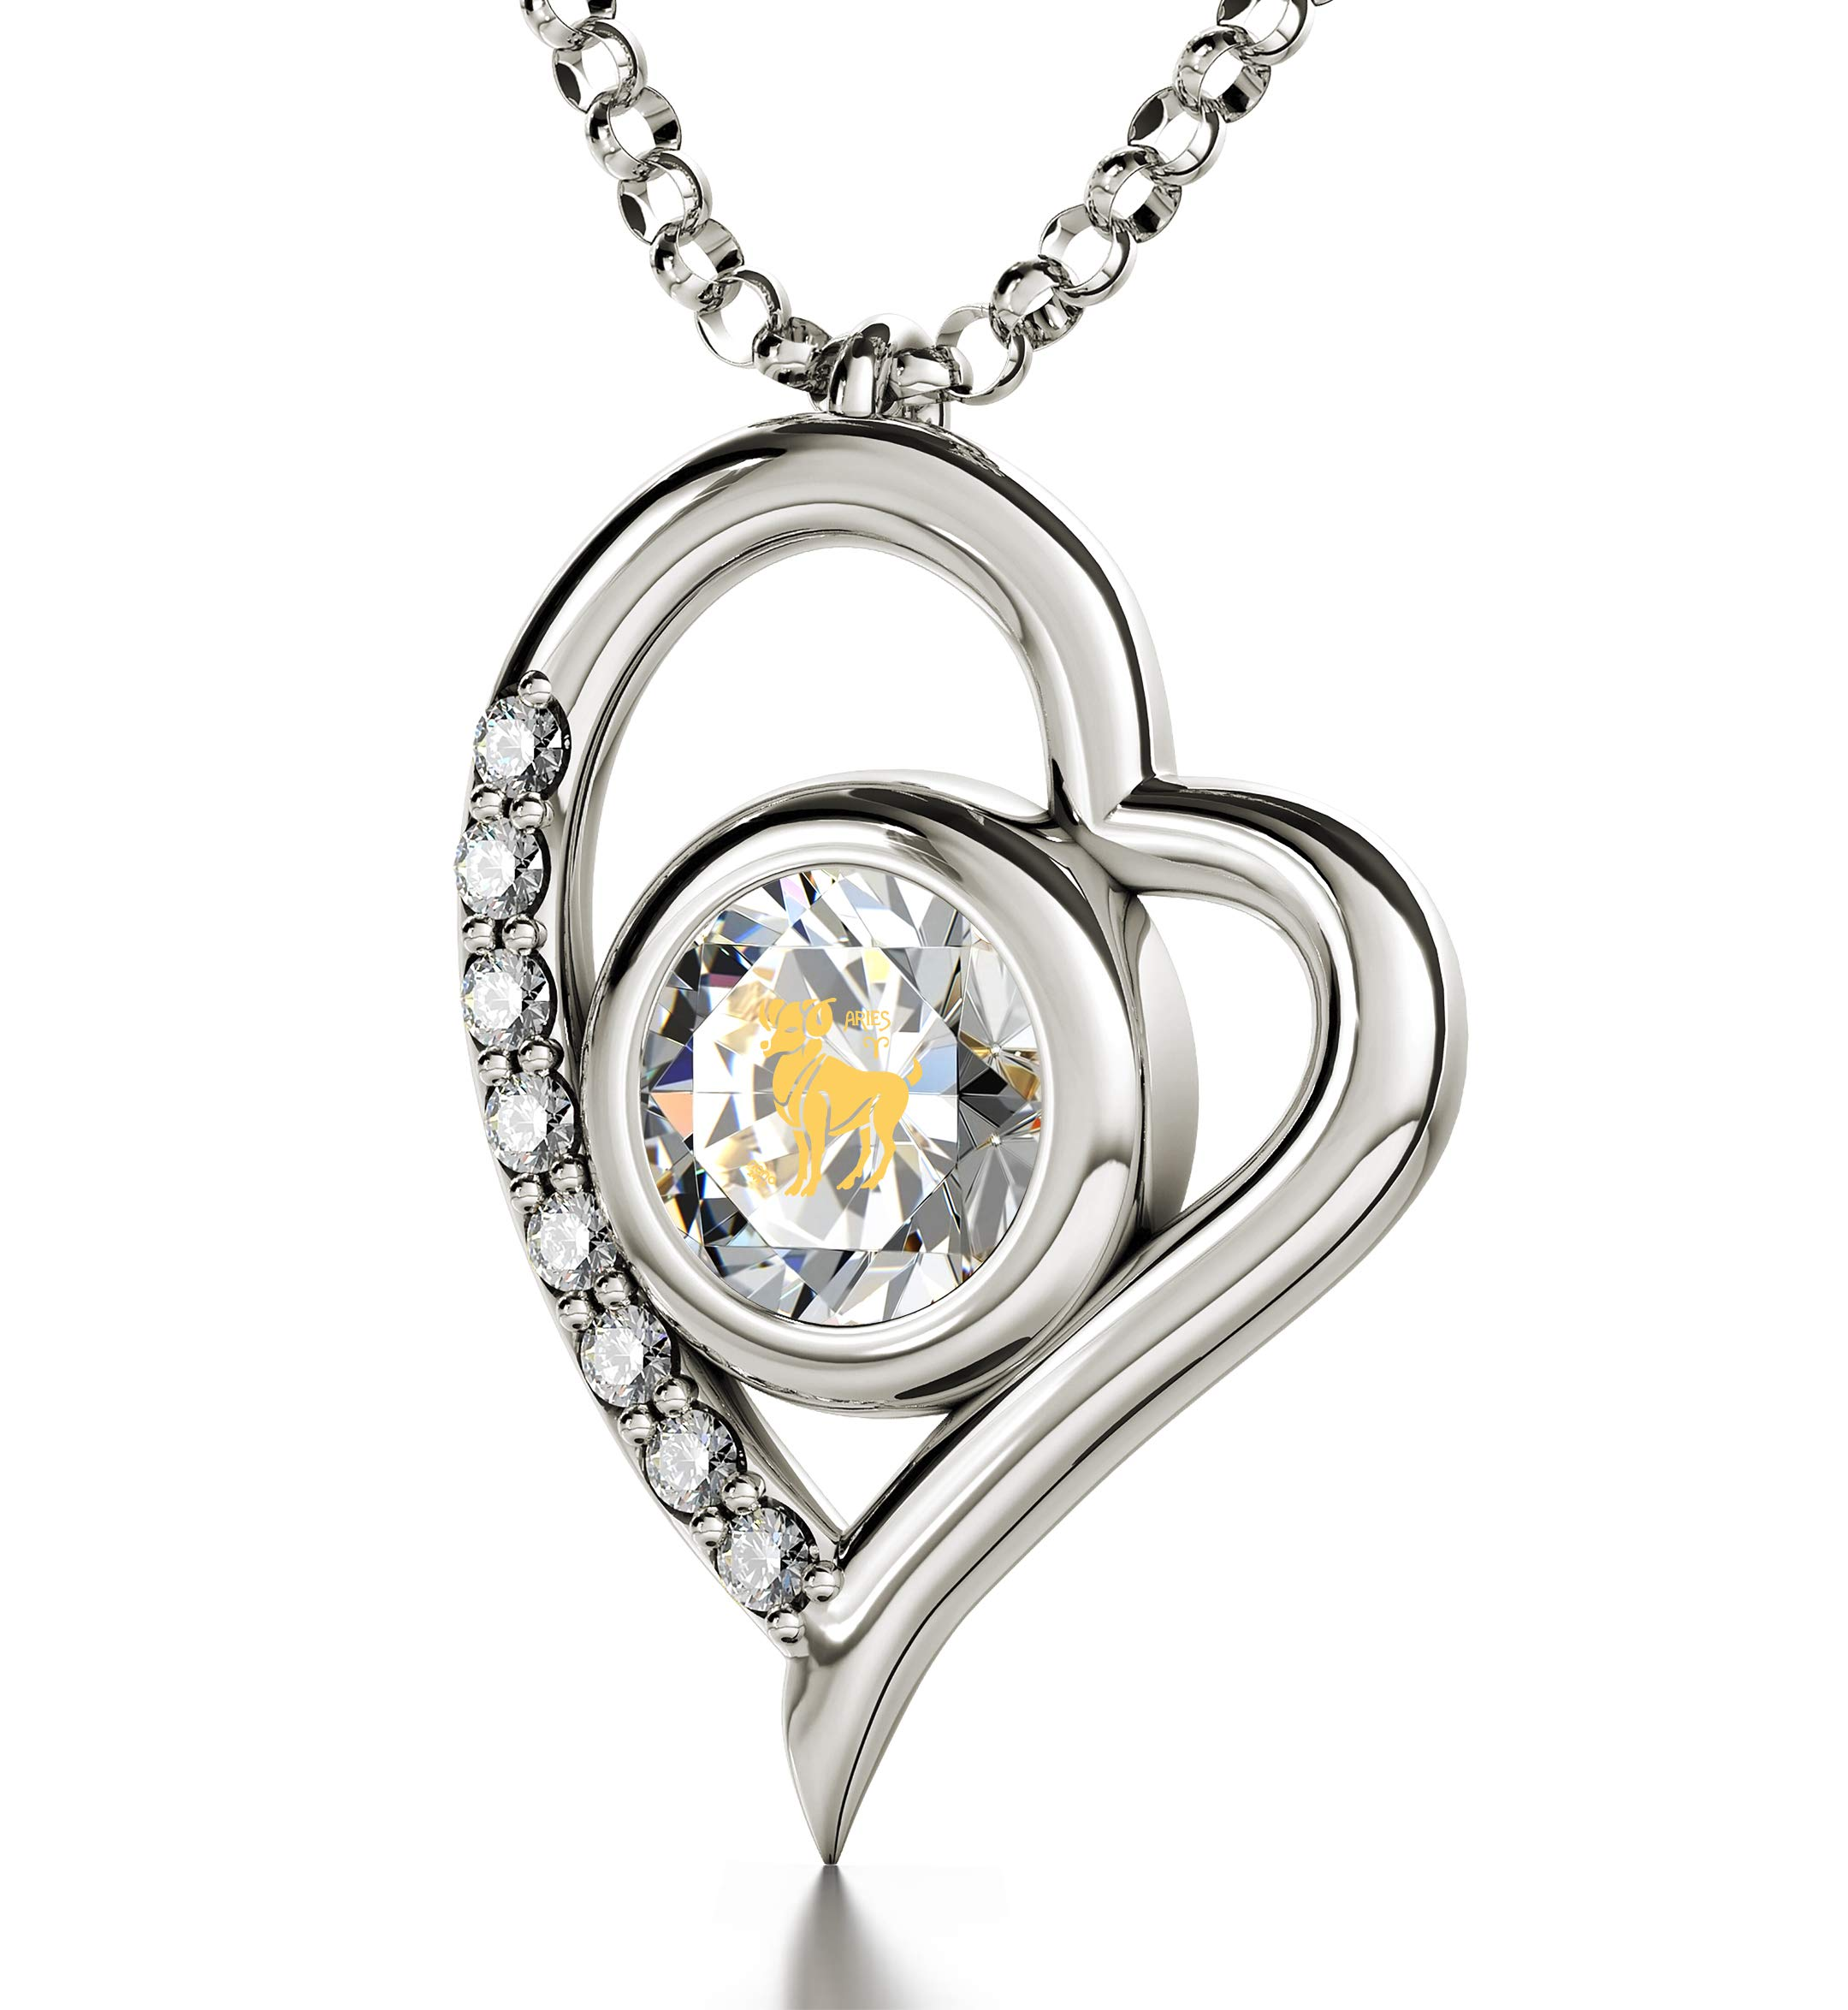 """925 Sterling Silver Aries Heart Necklace Zodiac Pendant for Birthdays 21st March to 19th April 24k Gold Inscribed with Star Sign and Symbol on Swarovski Crystal Stone, 18"""" Chain"""